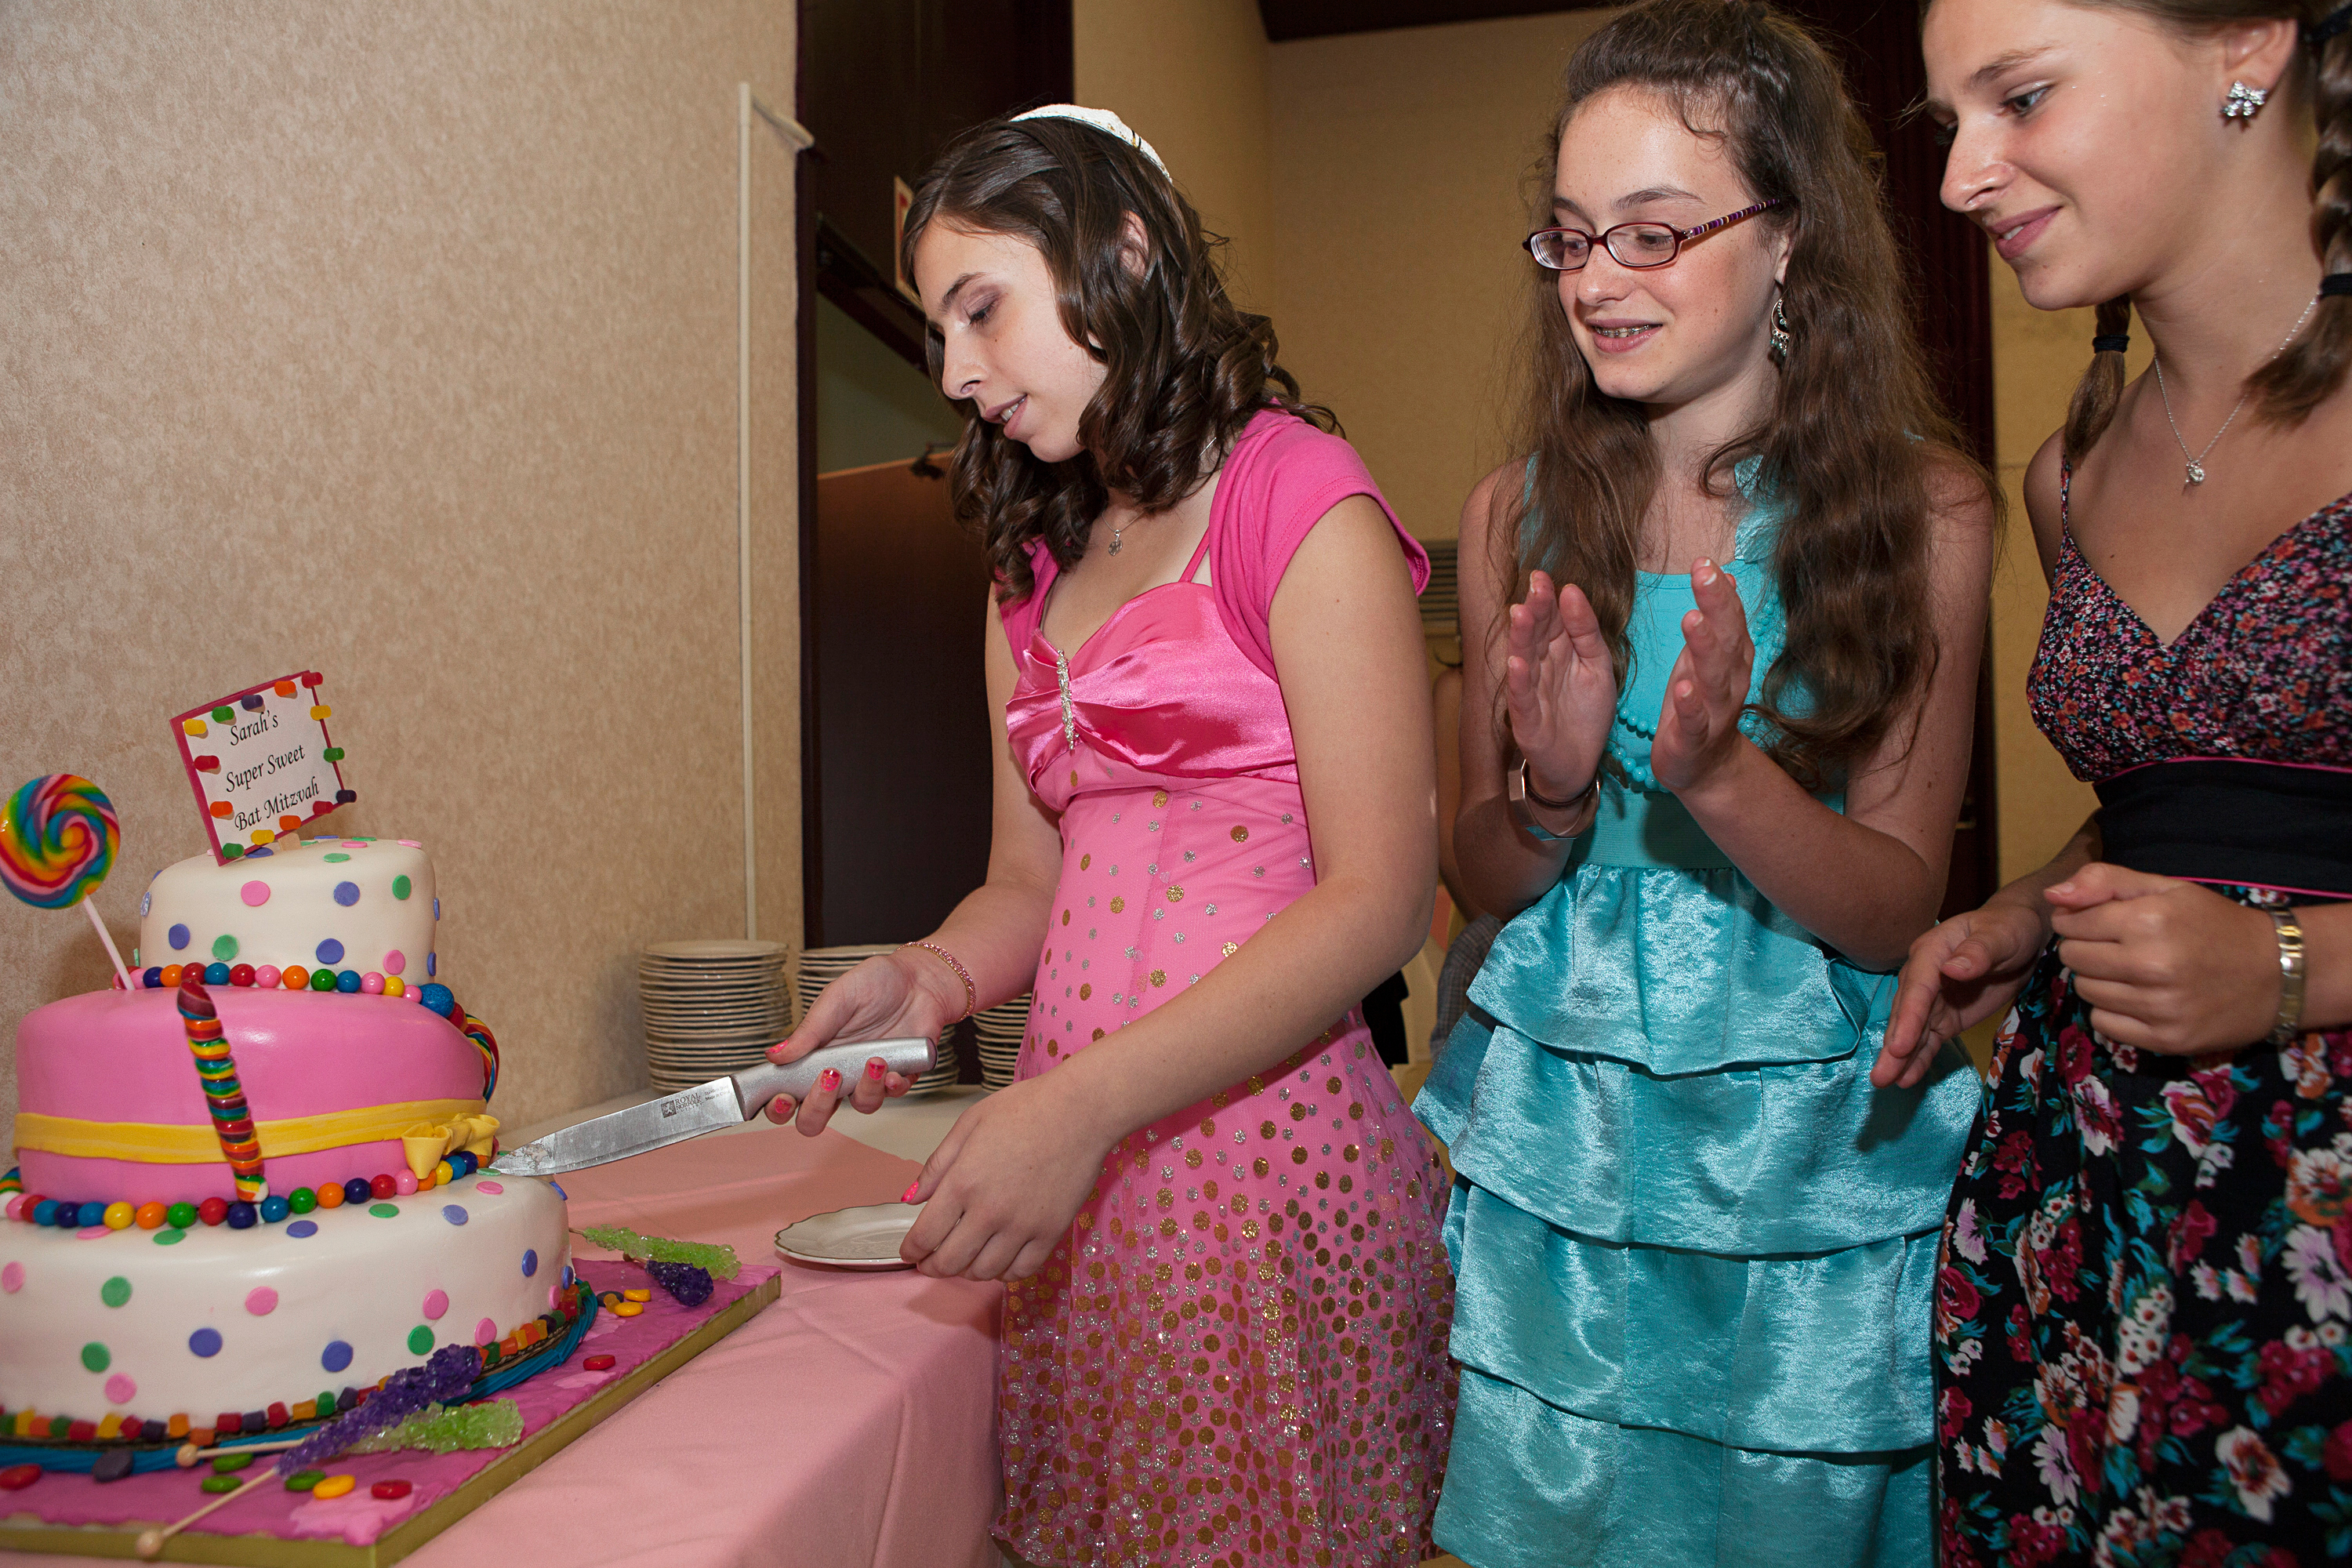 "<strong>According to industry estimates, ""the average bar or bat mitzvah budget runs roughly $15,000 to $30,000,"" writes <a href=""http://www.emitz.com/budget"" title=""eMitz.com: the Bar Bat Mitzvah Planning, Ideas, Vendor Reviews and Invitations Site"" target=""_blank"">eMitz.com</a>, the Bar and Bat Mitzvah Planning site. ""Many variables come into play, such as: time of year, time of day, number of guests and the region.  Manhattan and LA are the priciest.""</strong>                                                                      Title: ""Sarah's Bat Mitzvah, Buffalo, NY,"" from the series <a href=""http://www.rebeccagreenfield.com/#a=0&amp;at=0&amp;mi=2&amp;pt=1&amp;pi=10000&amp;s=0&amp;p=4"" title=""Coming of Age"" target=""_blank""><em>Coming of Age.</em></a>                                                                      <a href=""http://www.rebeccagreenfield.com/"" title=""Rebecca Greenfield"" target=""_blank"">Rebecca Greenfield</a> has been documenting contemporary American female rites of passage for the past six years, photographing coming of age traditions such as Quinceañeras, Bat Mitzvahs, Debutante Balls, Prom, Homecoming, Sweet Sixteen, Purity Balls, Sorority Rush, Apache Sunrise Dances and more. She looks forward to publishing the project in book form when complete."